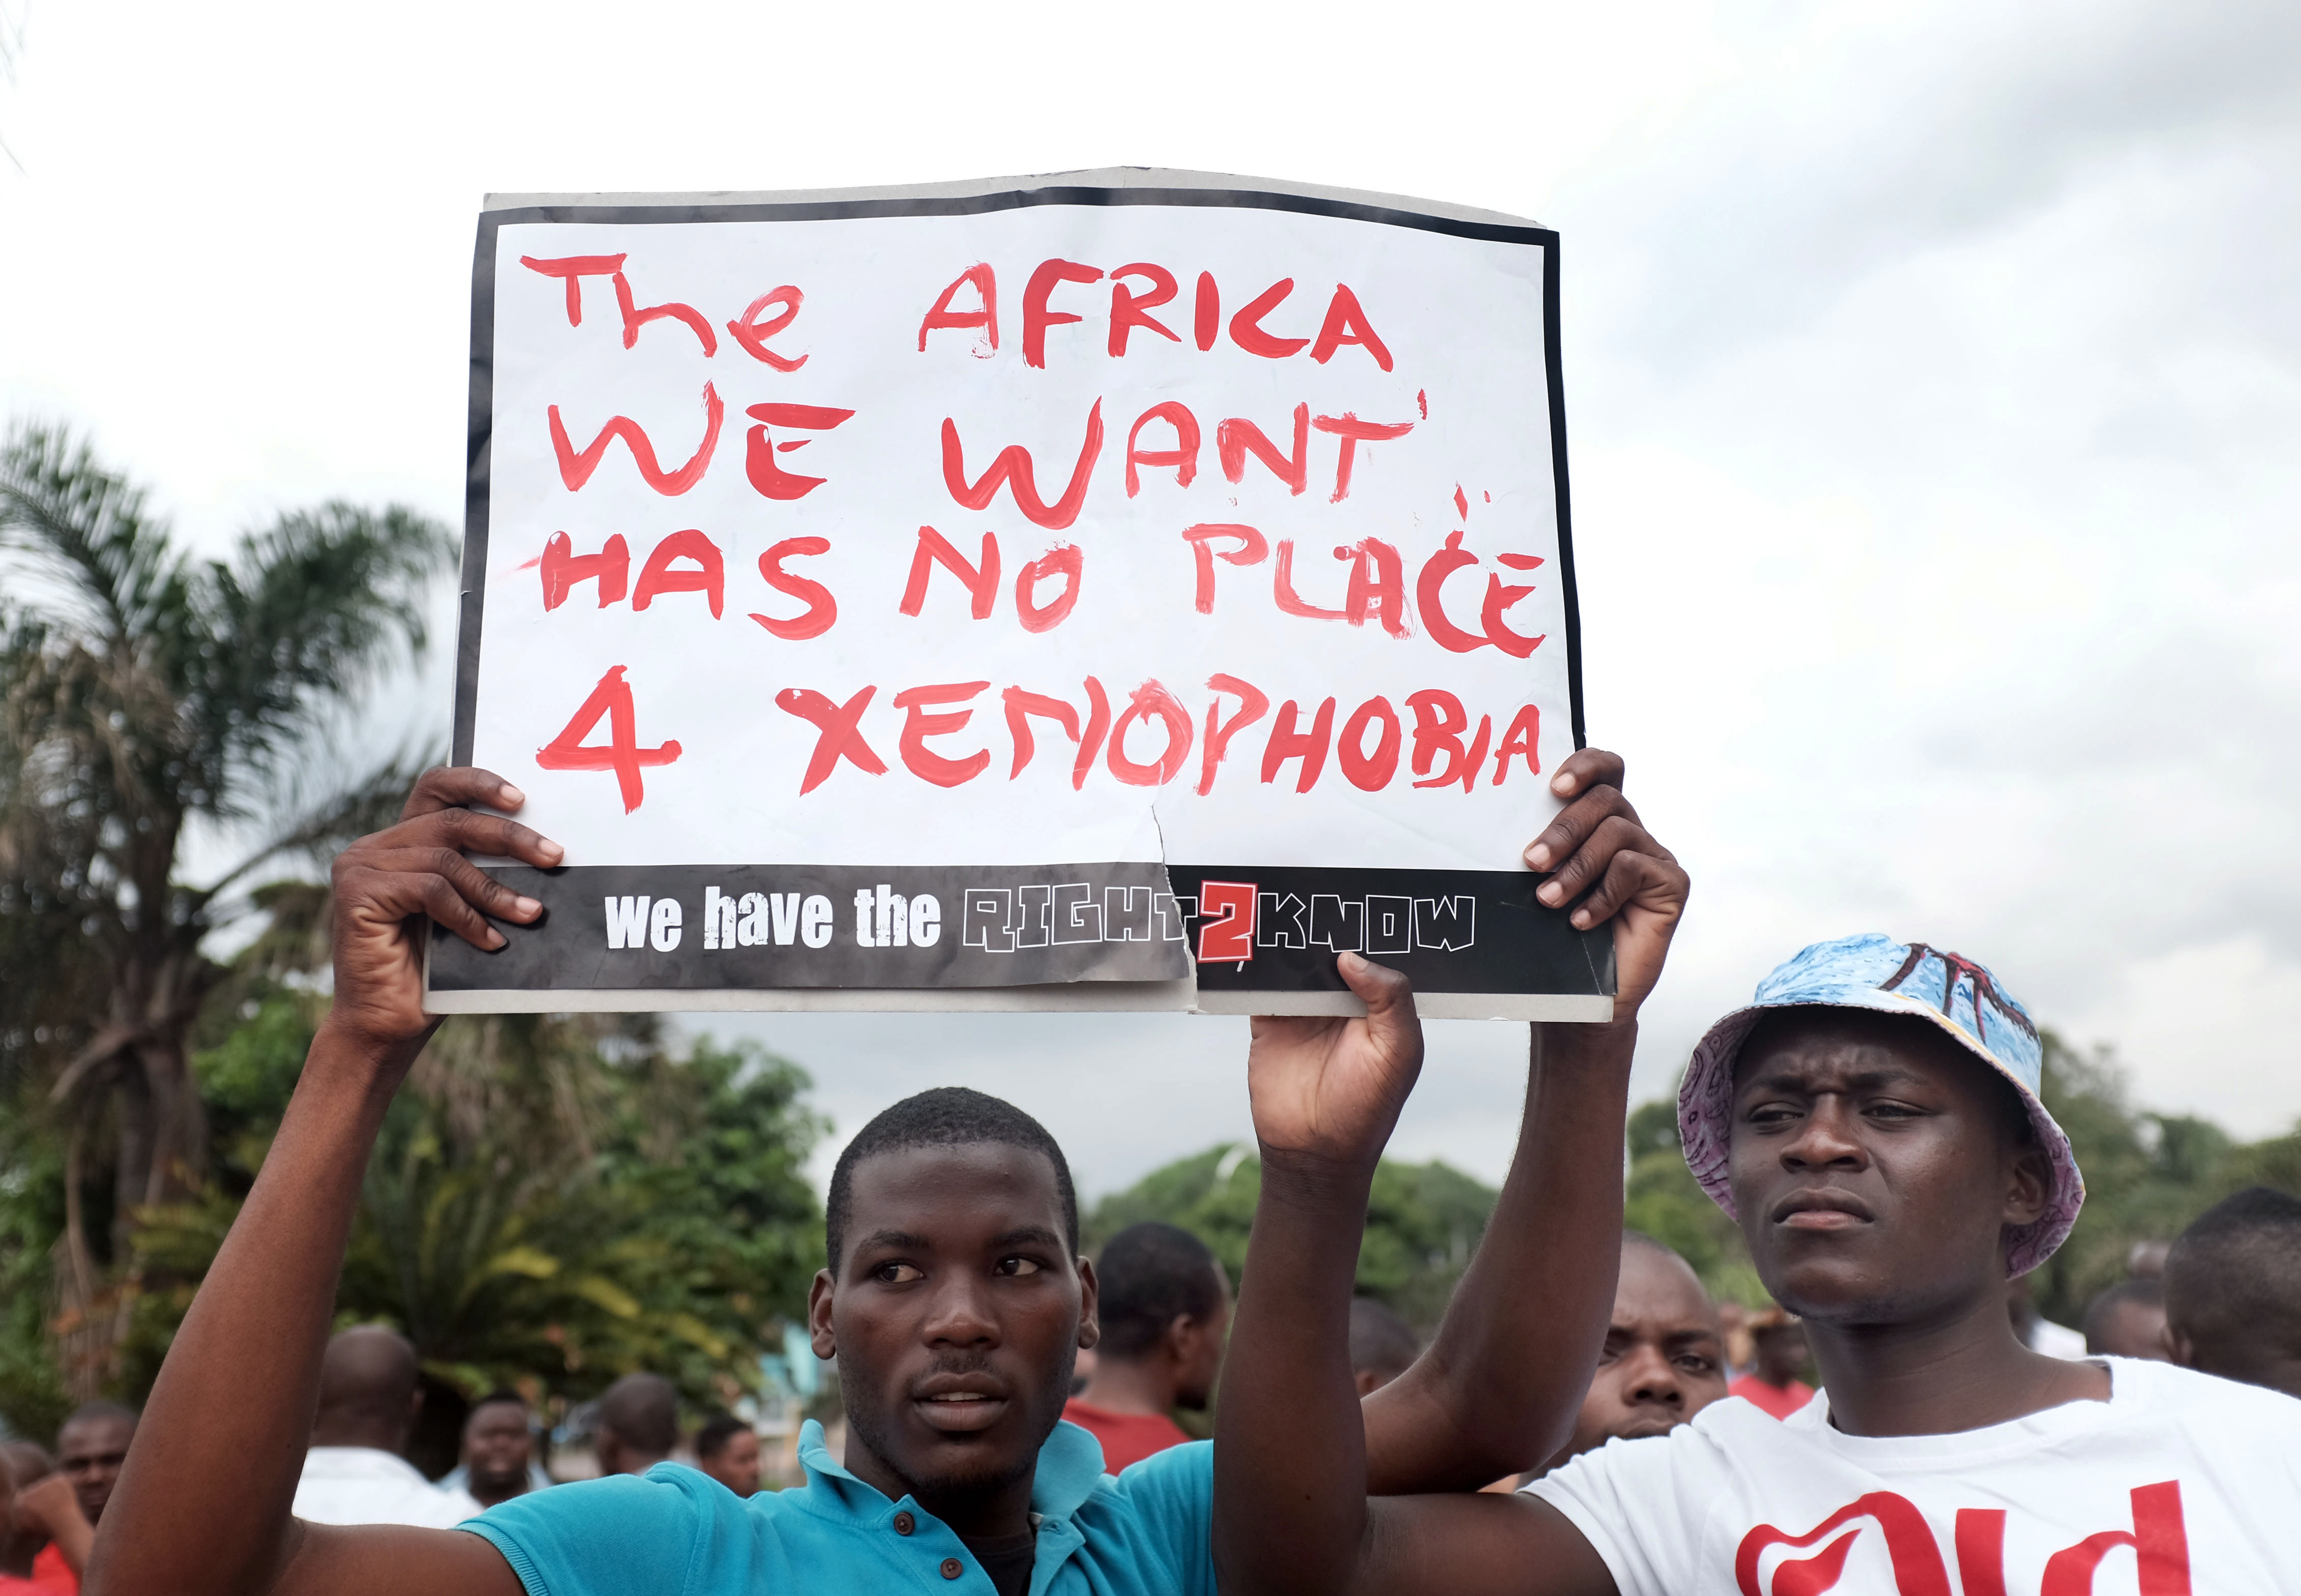 essays on xenophobia in south africa South africa the film is shot in and xenophobia-related protests and attacks in south africa xenophobia is a recurring trauma my essay in the social.